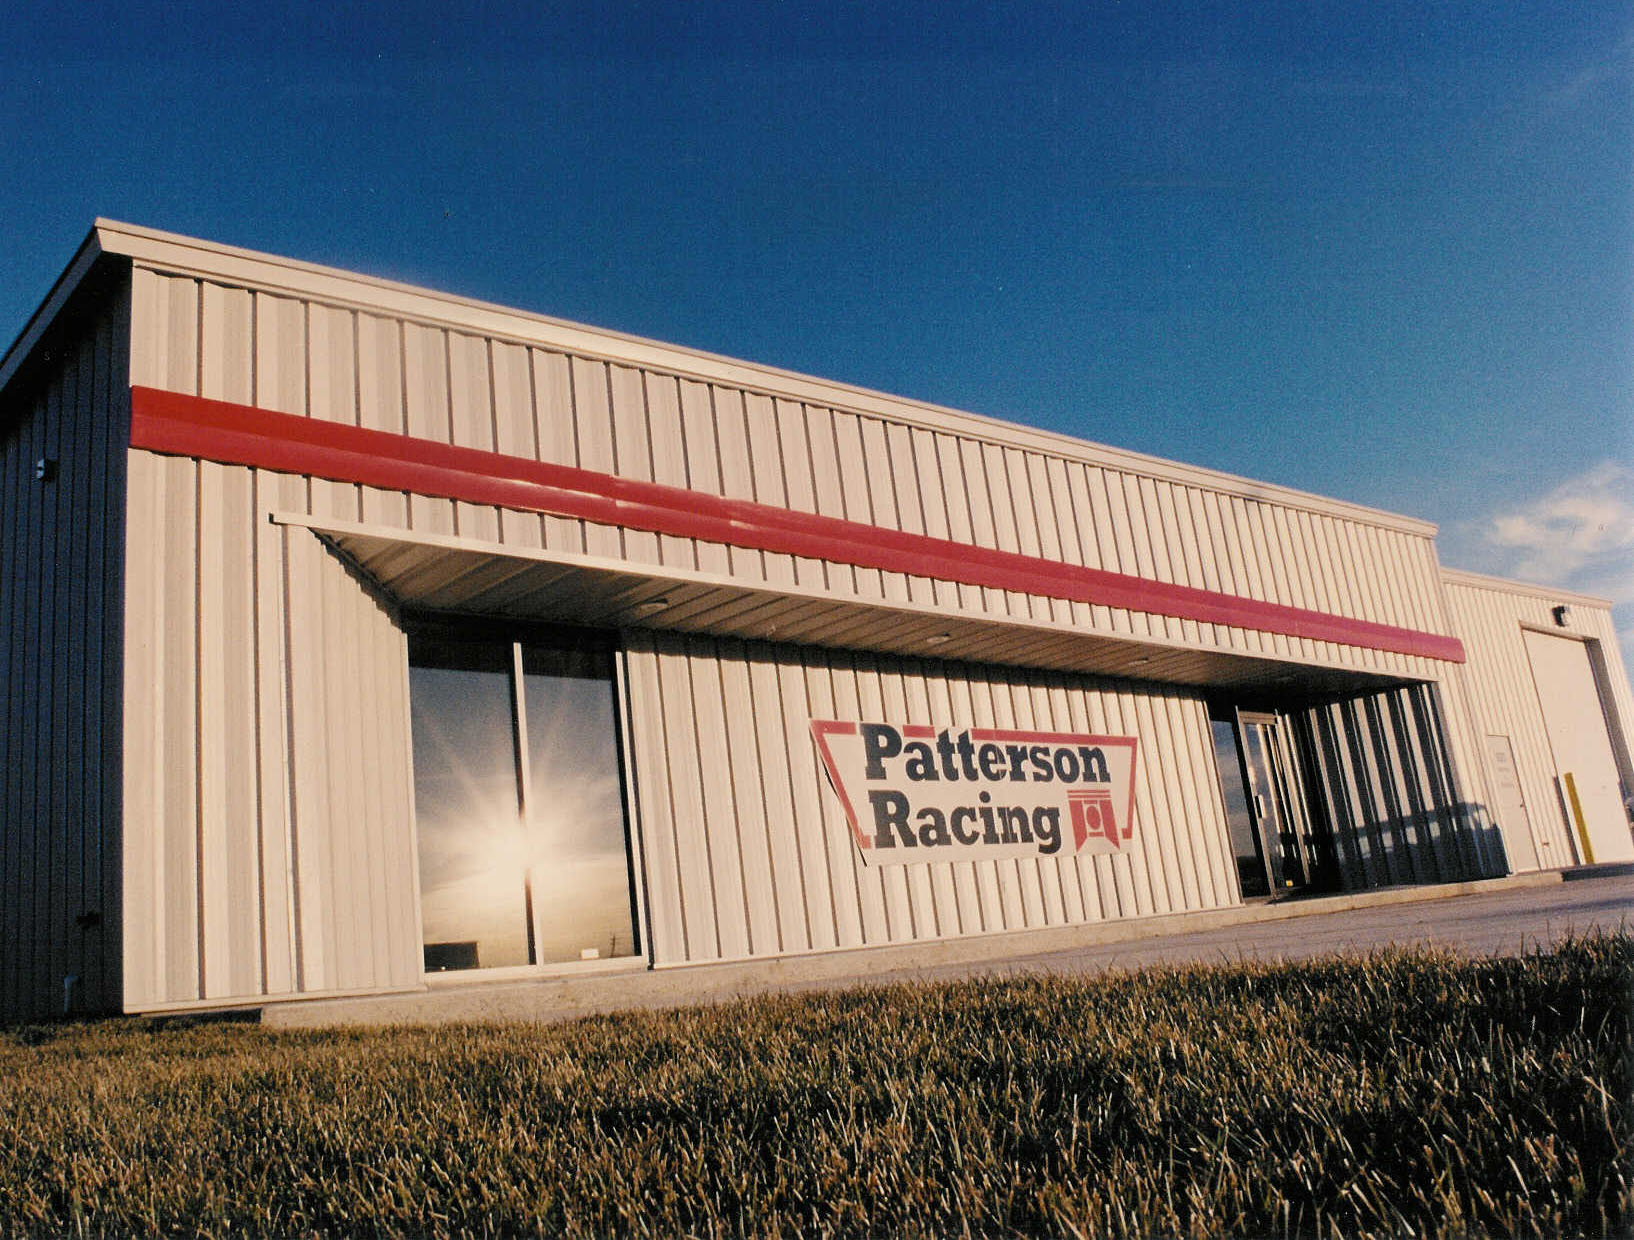 patterson-racing-building-1994.jpg